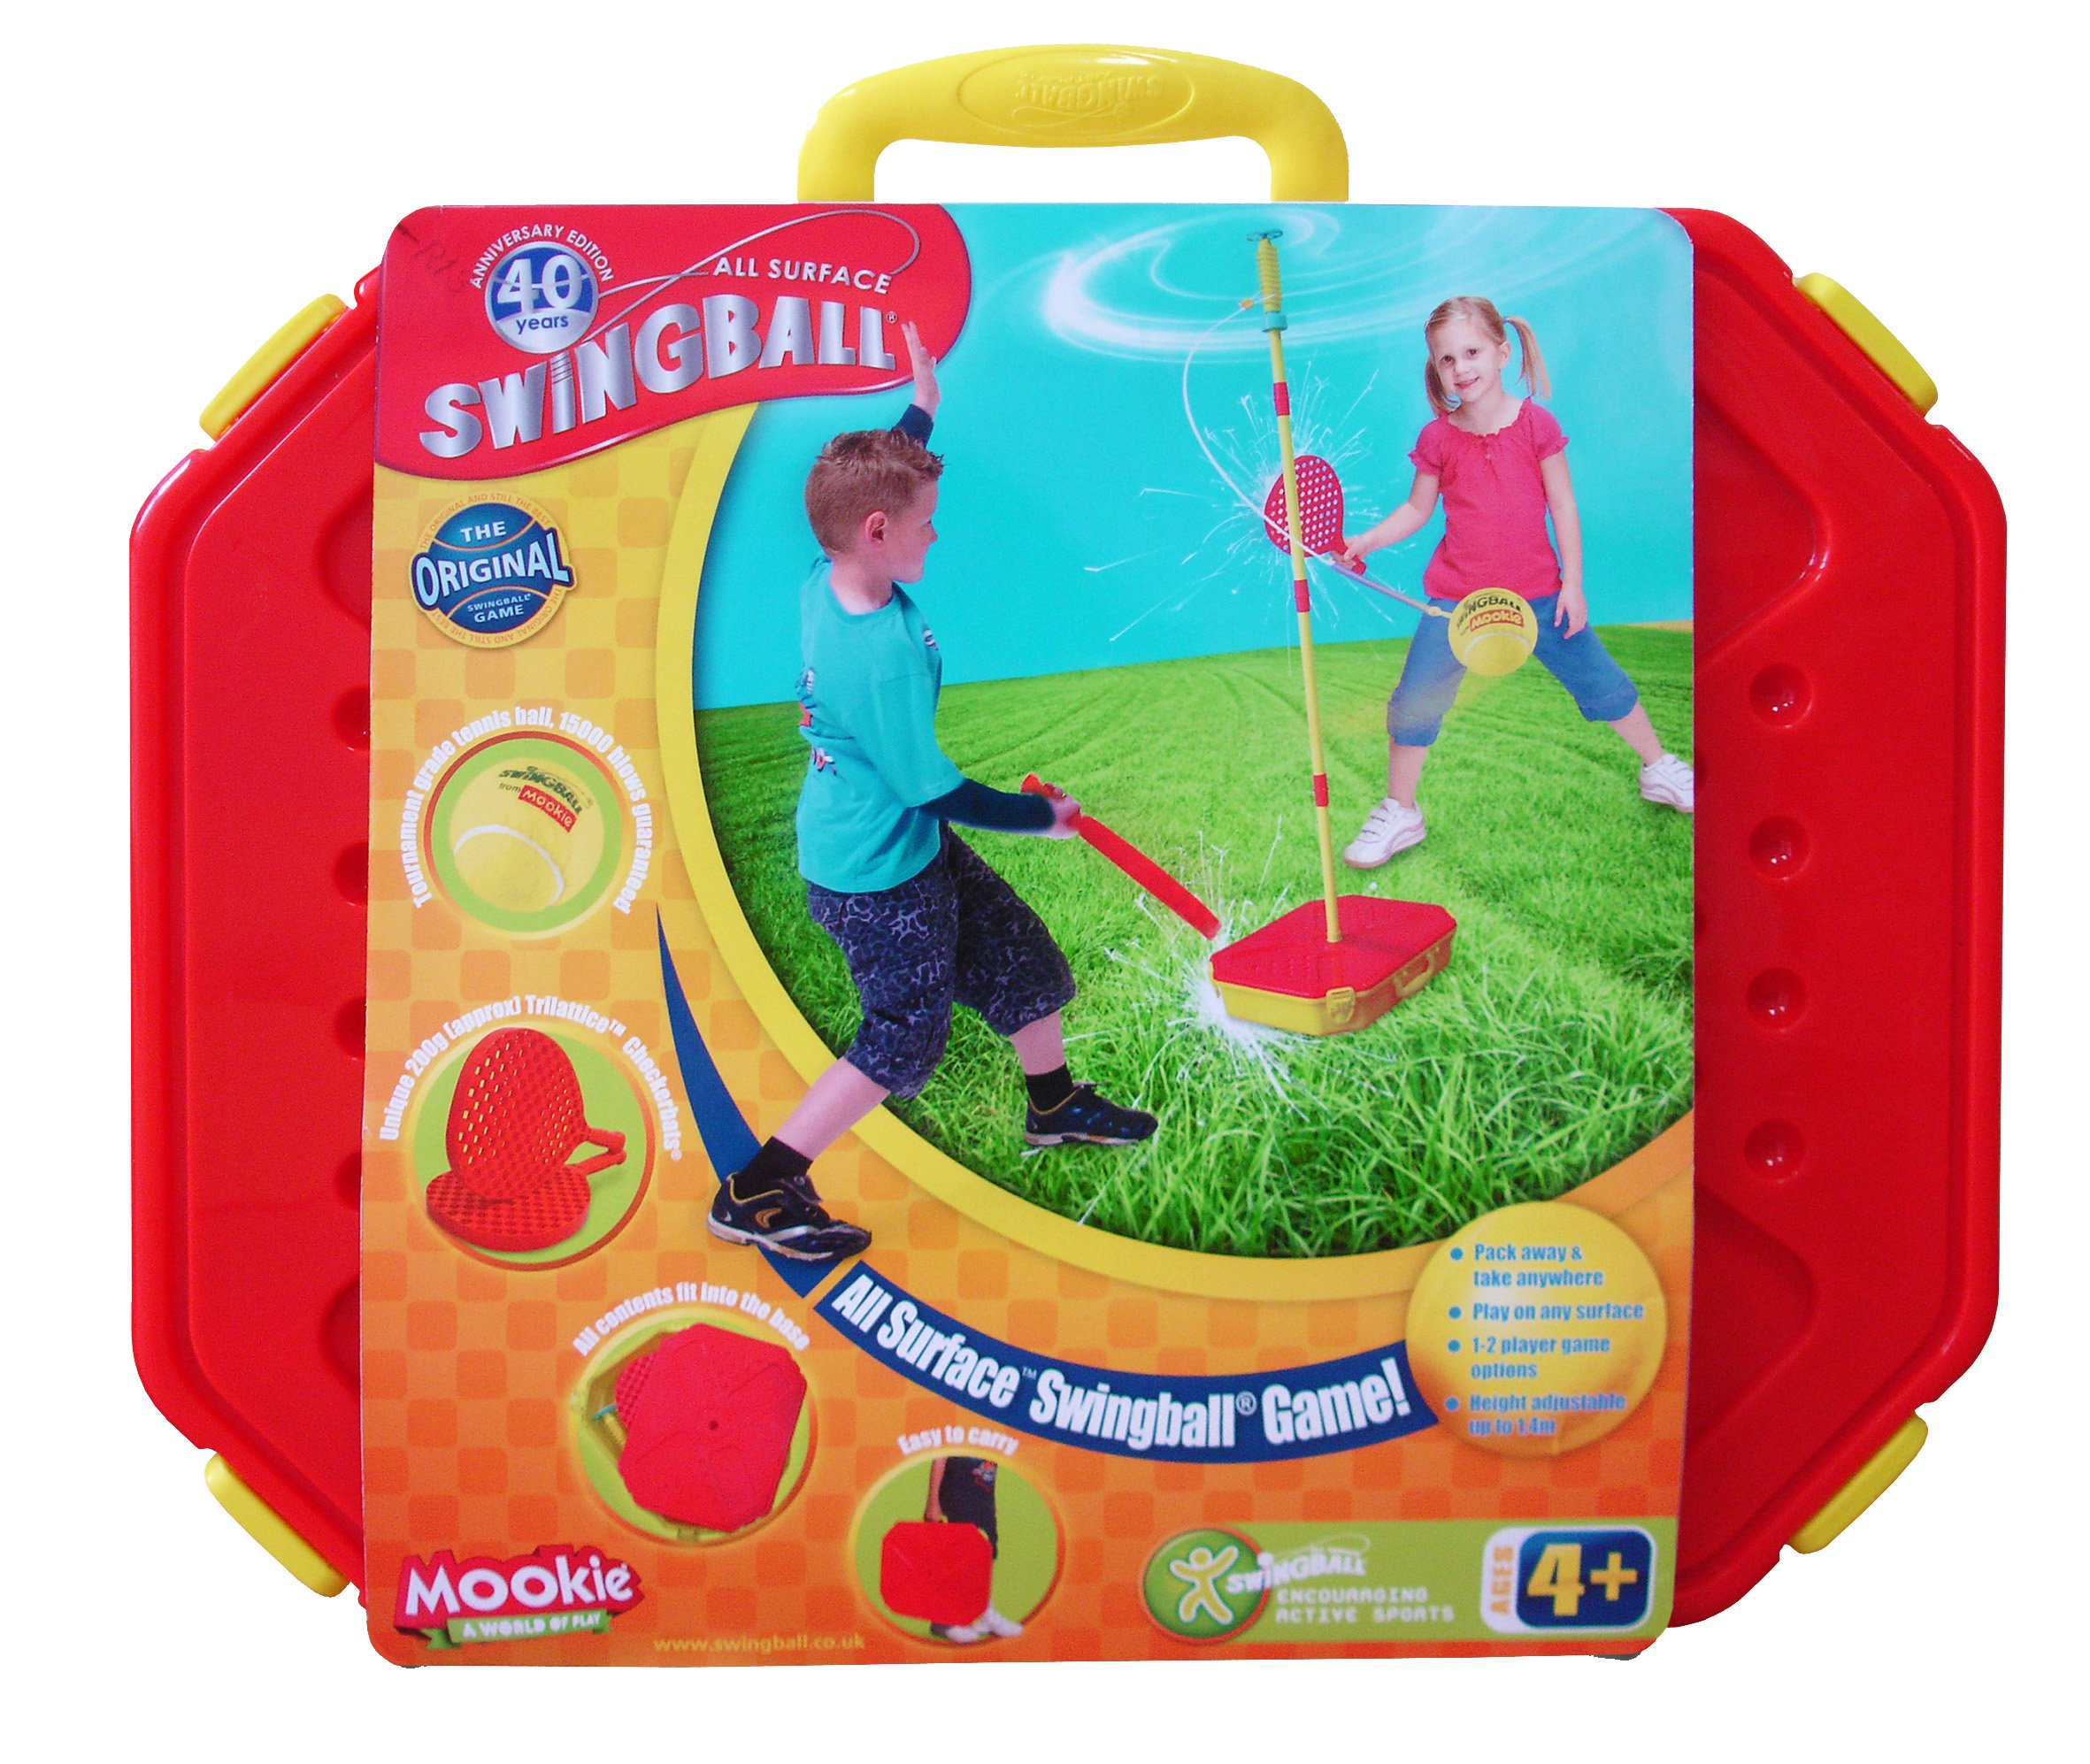 Mookie Classic Swingball Tetherball Set - Portable Tetherball by Mookie Swingball